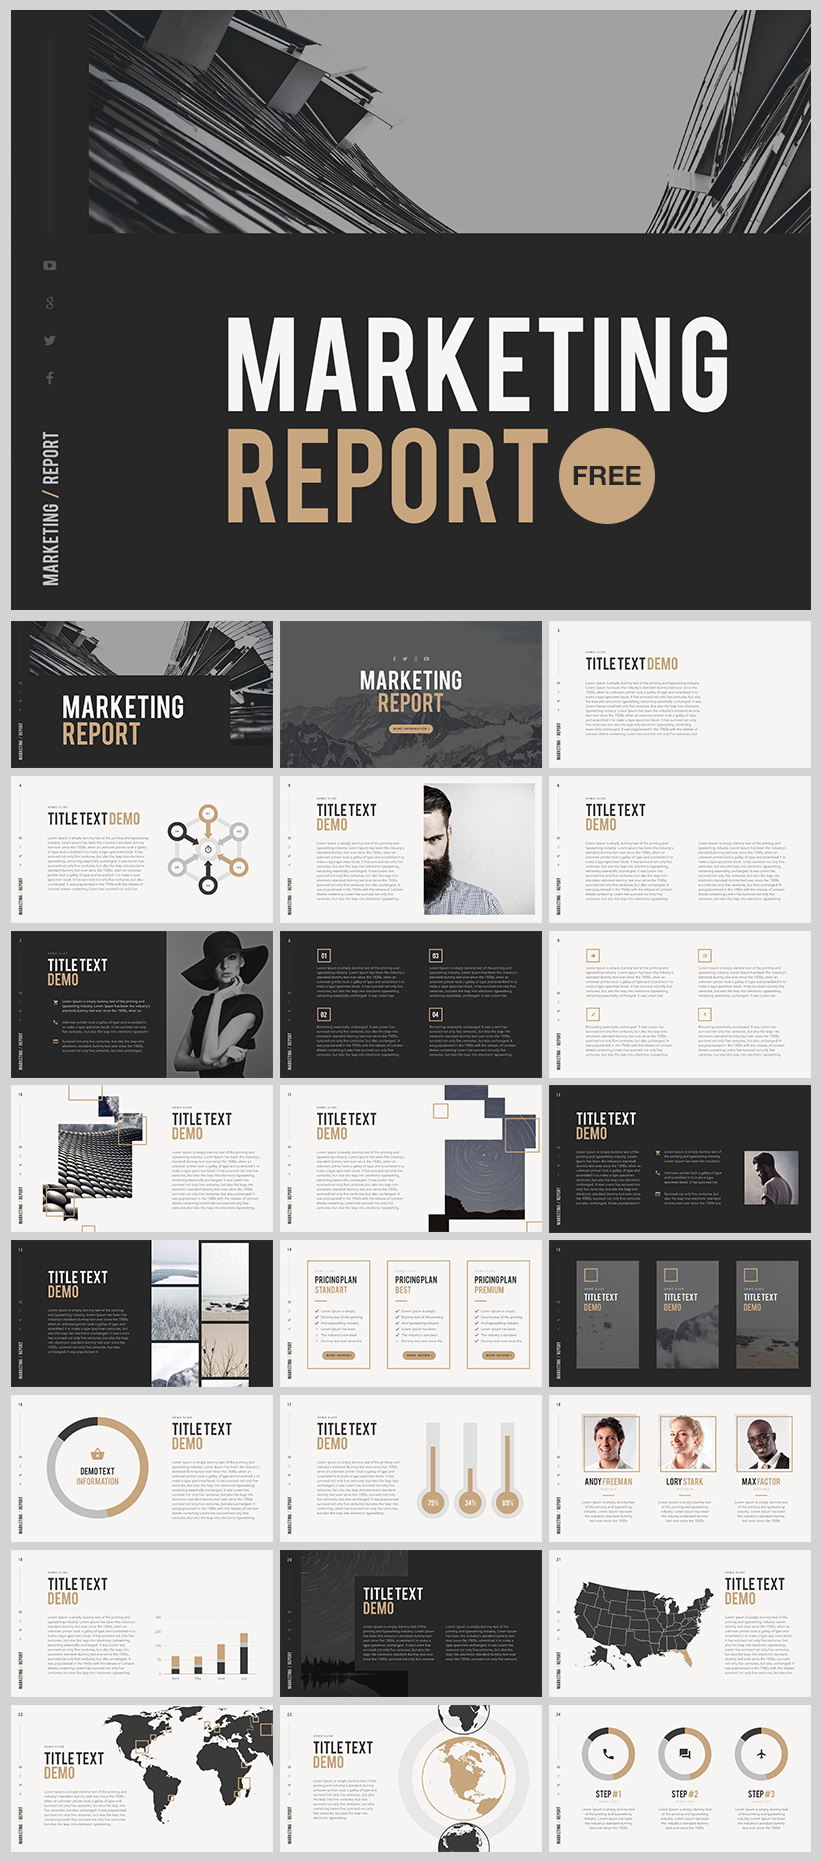 Marketing report template powerpoint digitalmarket pinterest marketing report template powerpoint toneelgroepblik Image collections